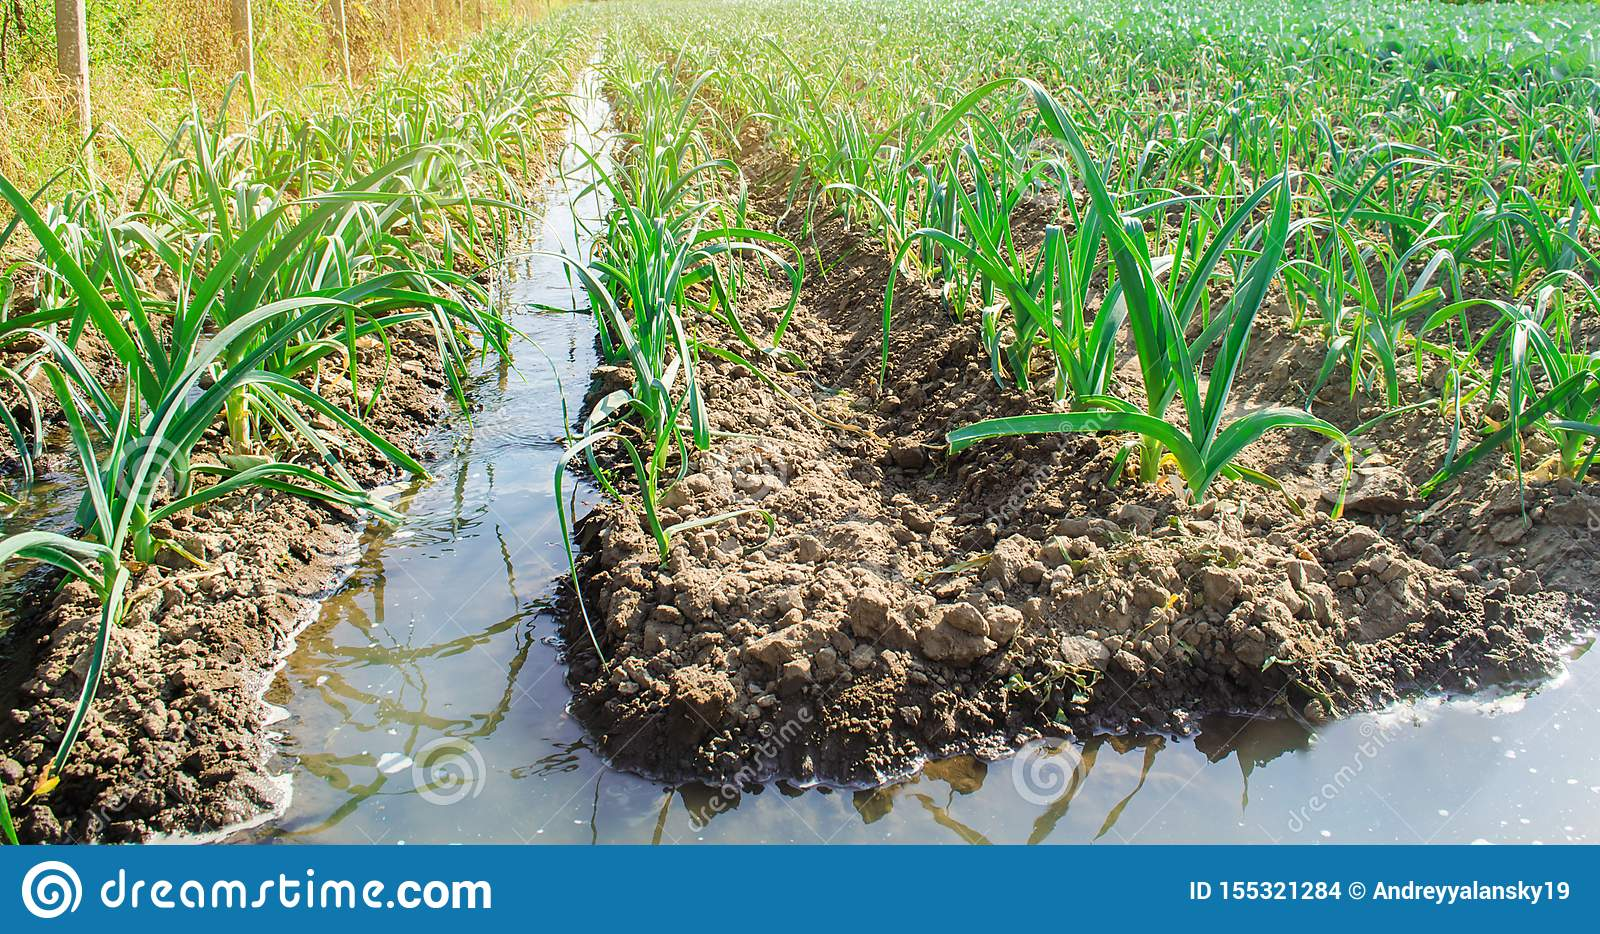 Irrigation leek in the field. Traditional natural watering. Eco-friendly products. Agriculture and farmland. Crops. Ukraine,